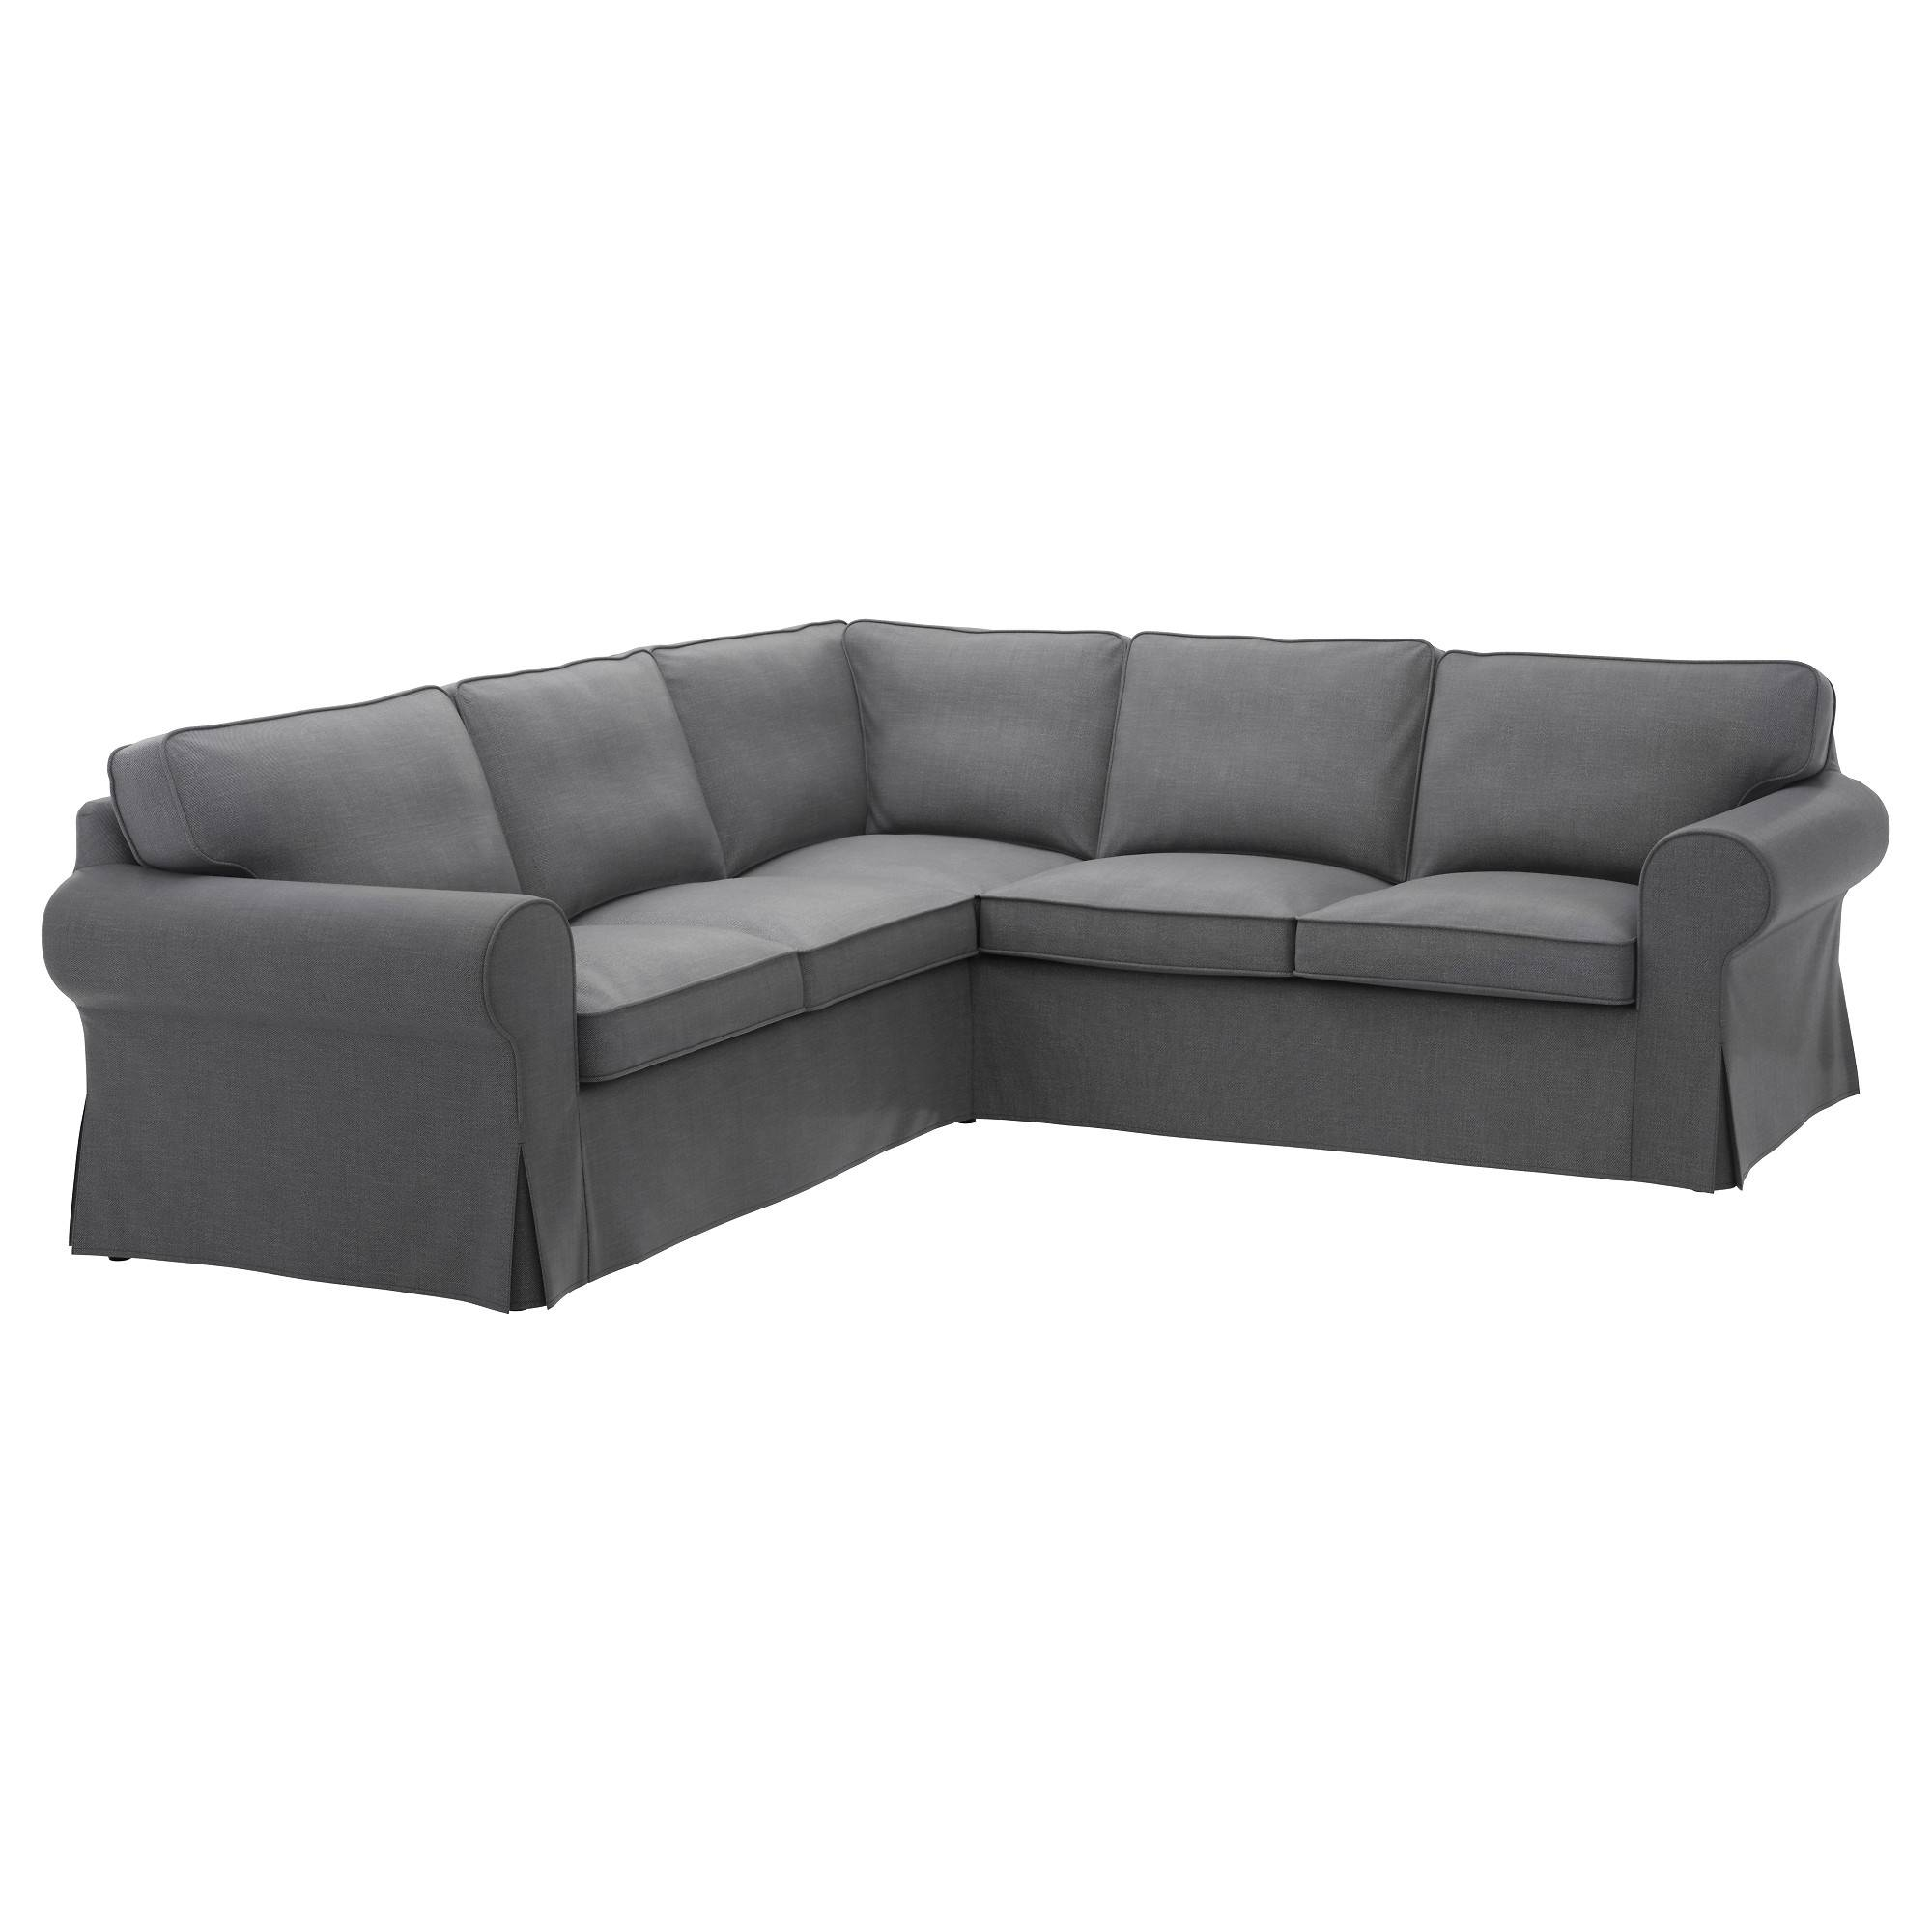 Fabric Sofas - Modern & Contemporary - Ikea for Small Sofas Ikea (Image 11 of 30)